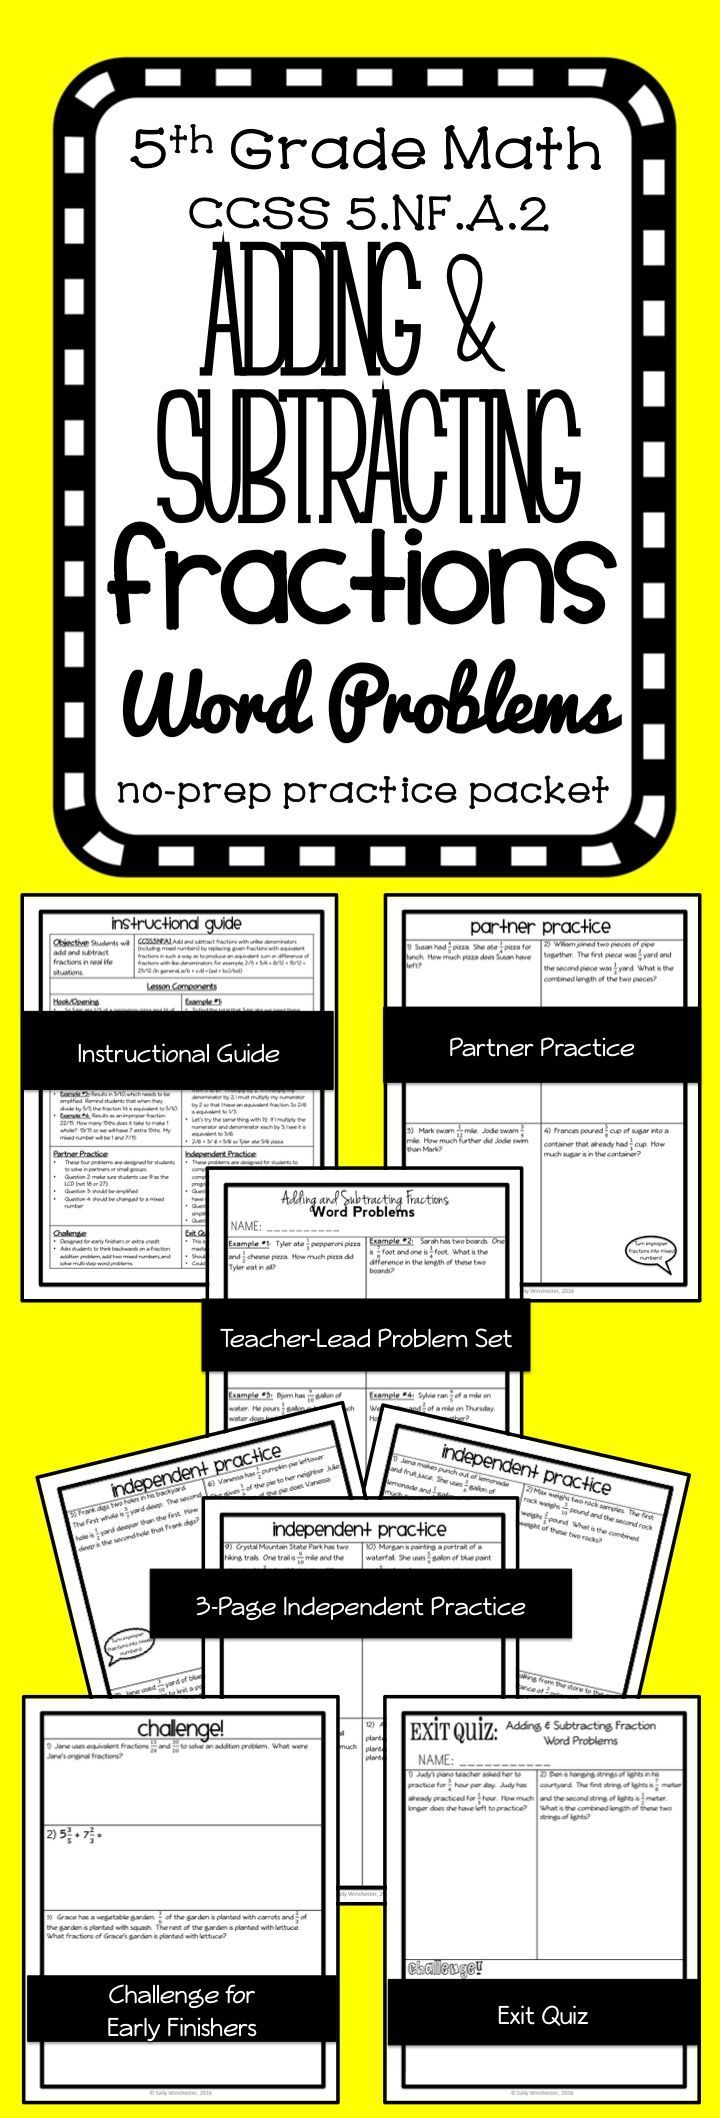 Free Worksheet Fraction Attraction Worksheet 17 best ideas about add and subtract fractions on pinterest adding subtracting with unlike denominators word problems complete 8 page lesson packet